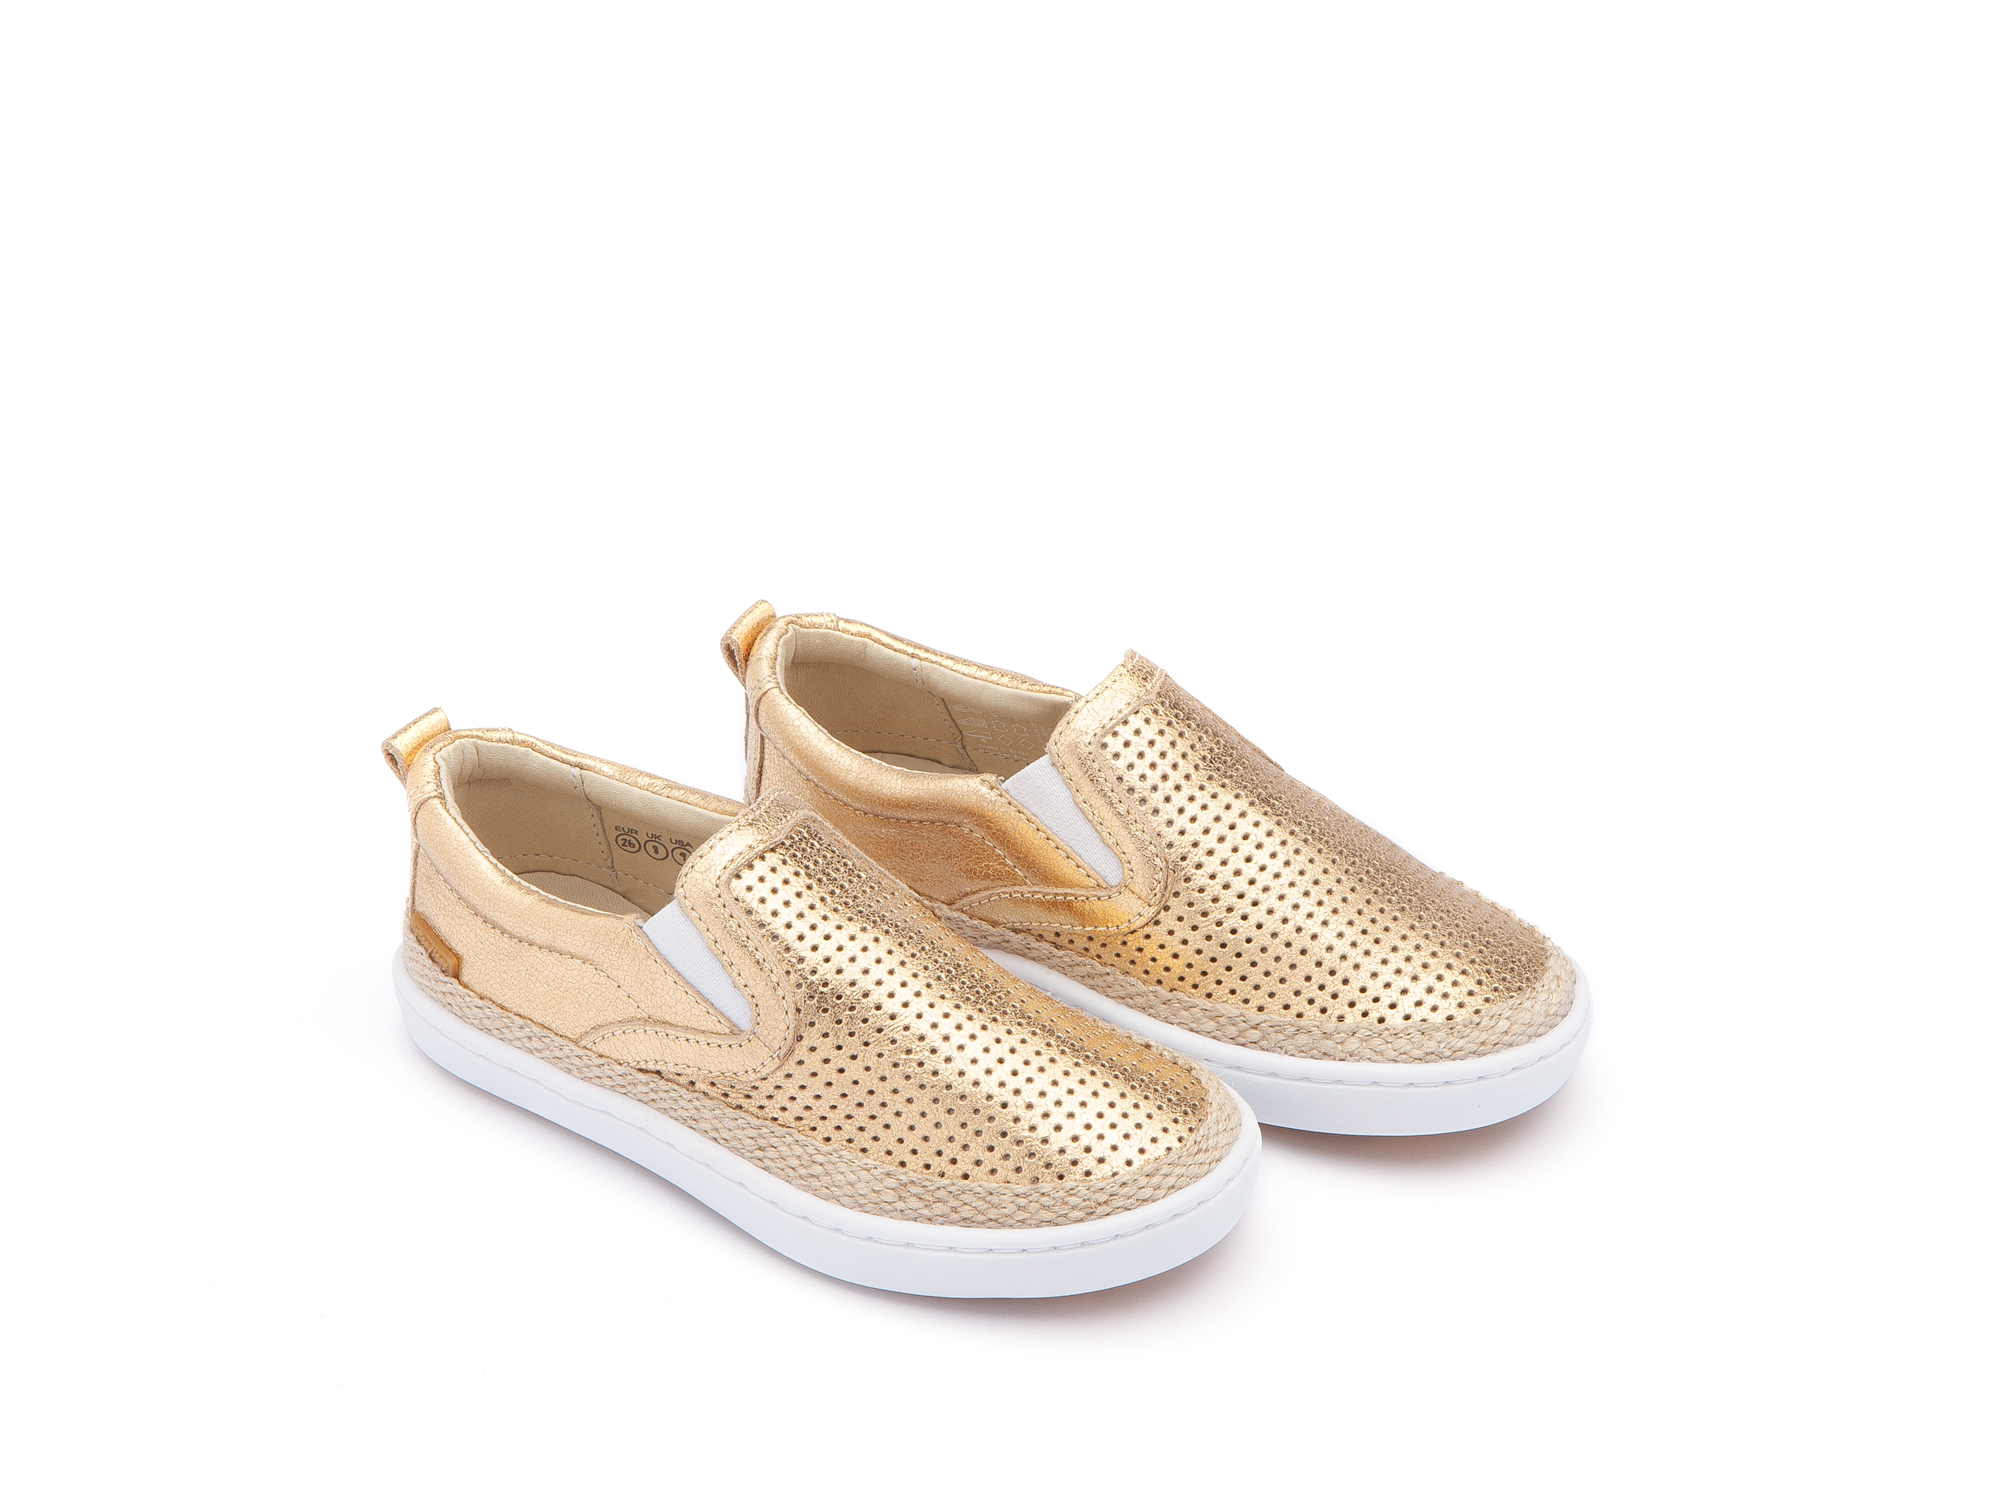 Tênis Little Straw Golden Shine Holes/ Golden Shine Toddler 2 à 4 anos - 0